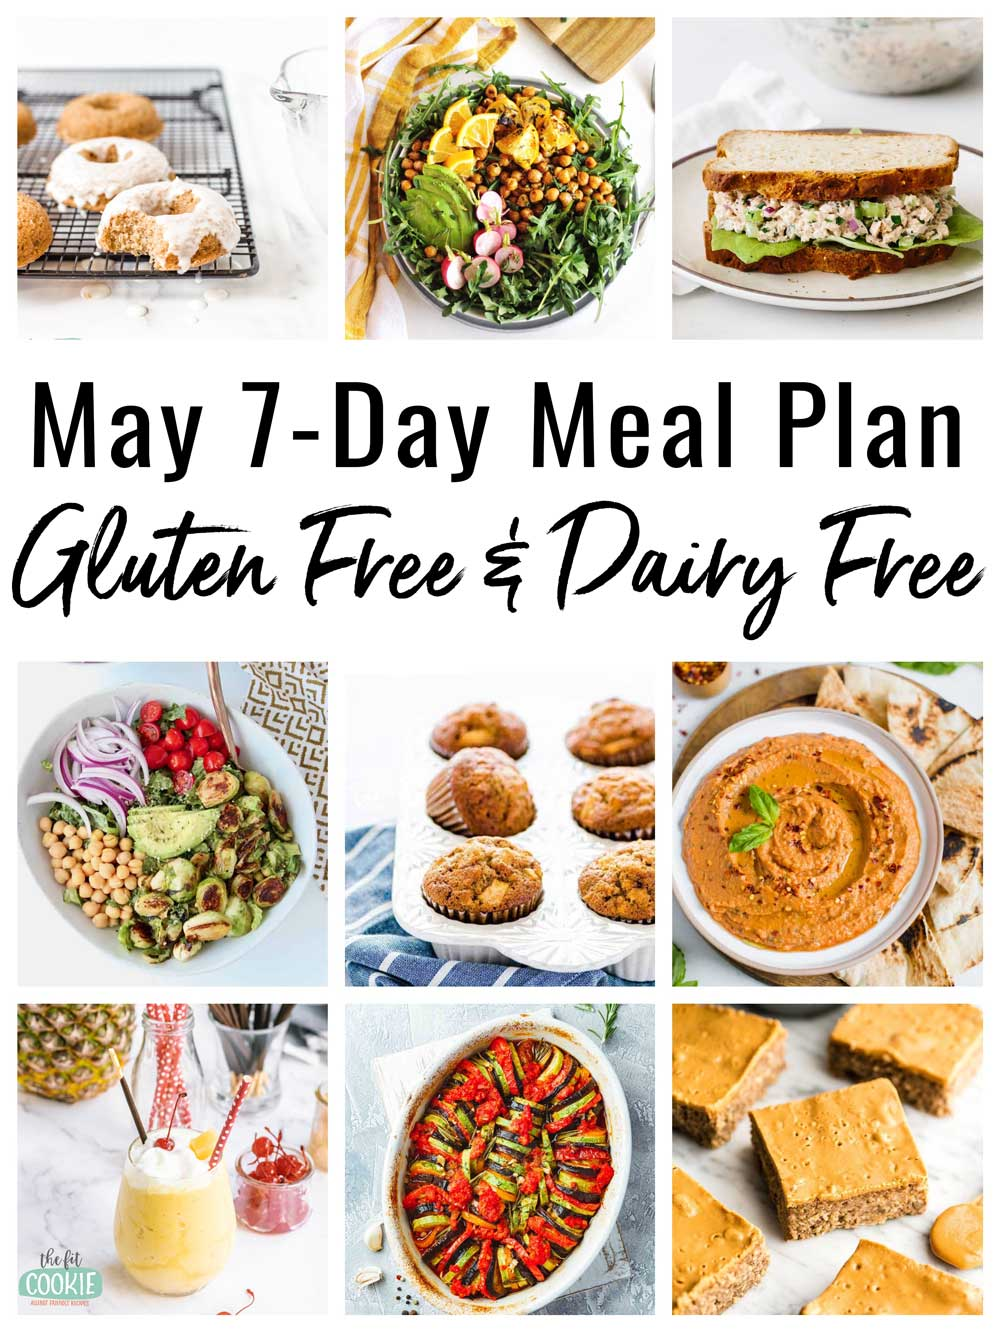 image collage of gluten free meals in a 7-day meal plan